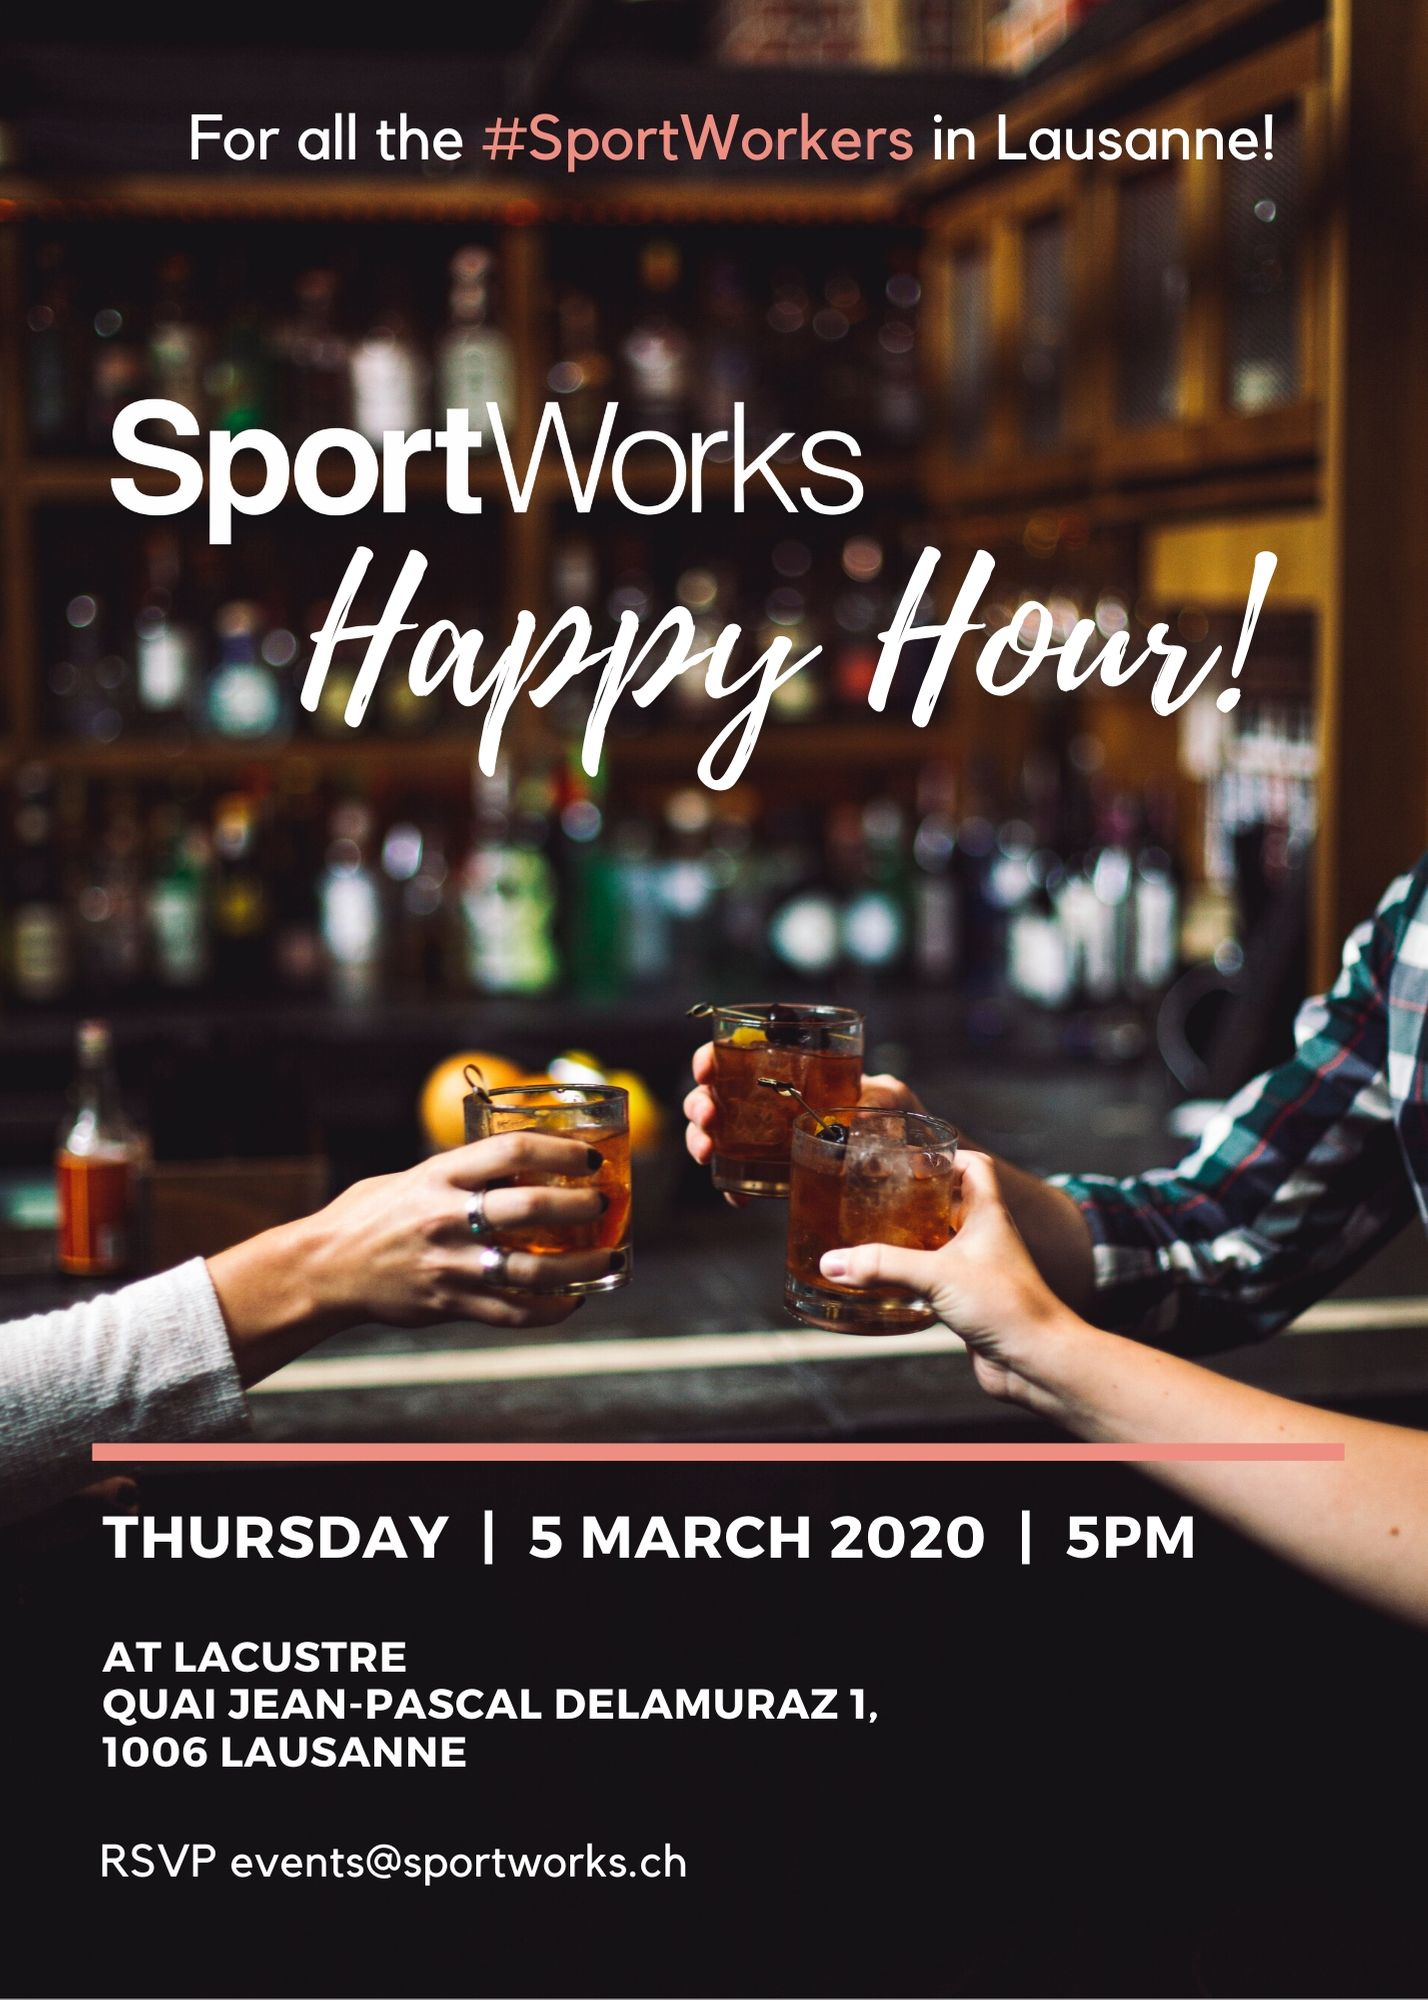 SportWorks Happy Hour event in Lausanne for al the SportWorkers on Thursday March 5th 5pm cheers beer wine